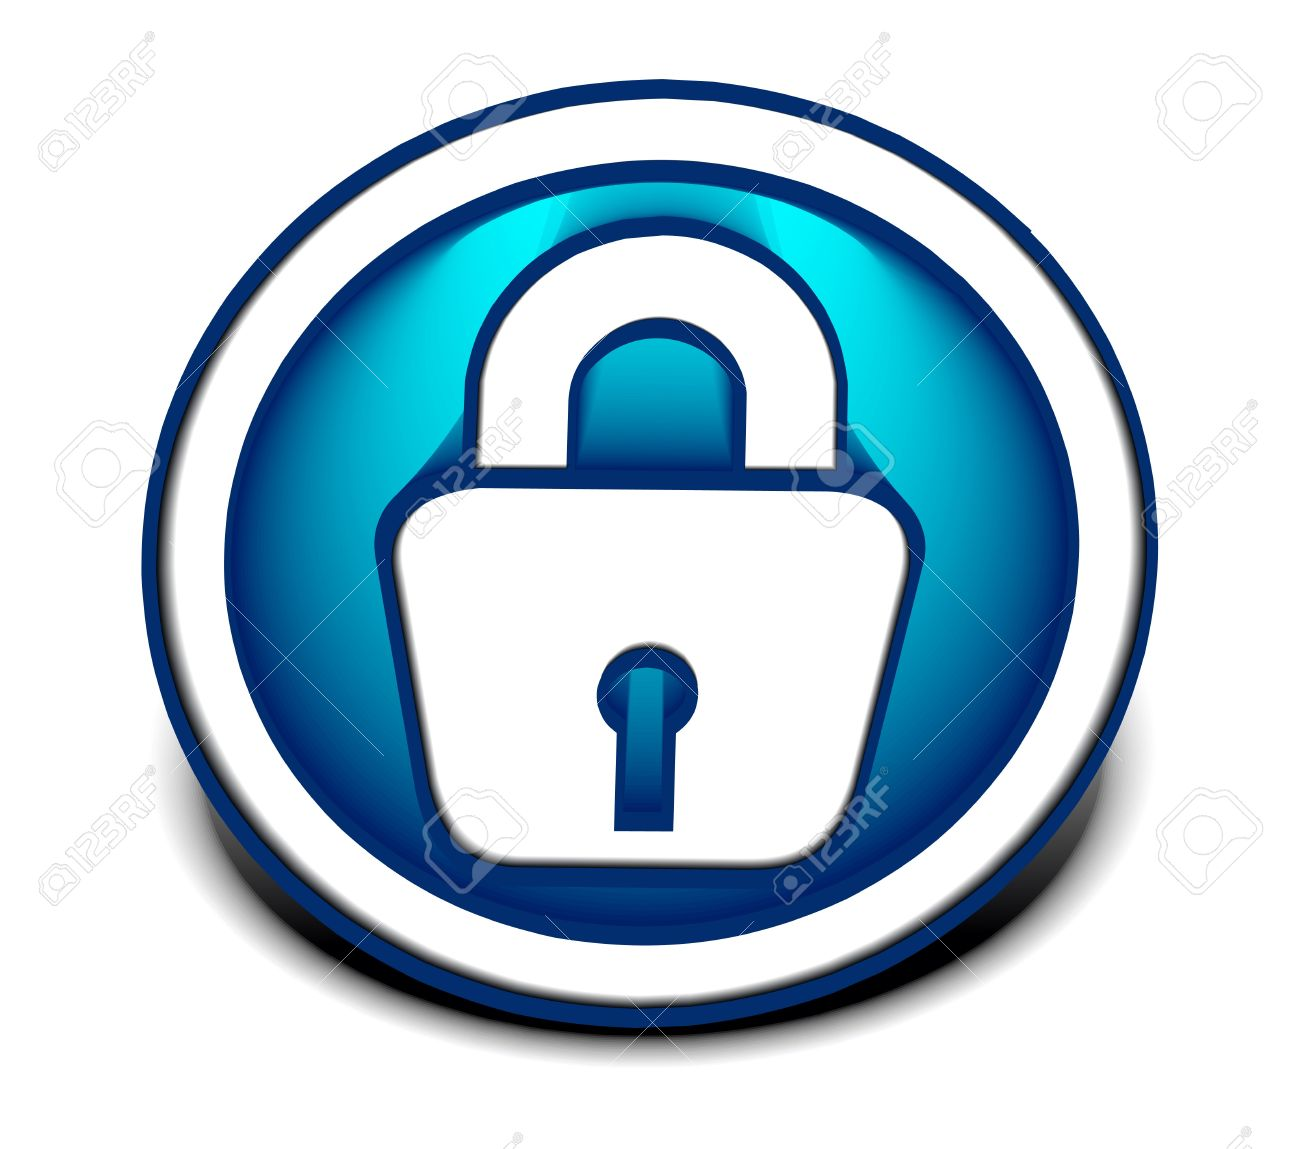 3d glossy lock icon, blue isolated on black background. Stock Vector - 9559386